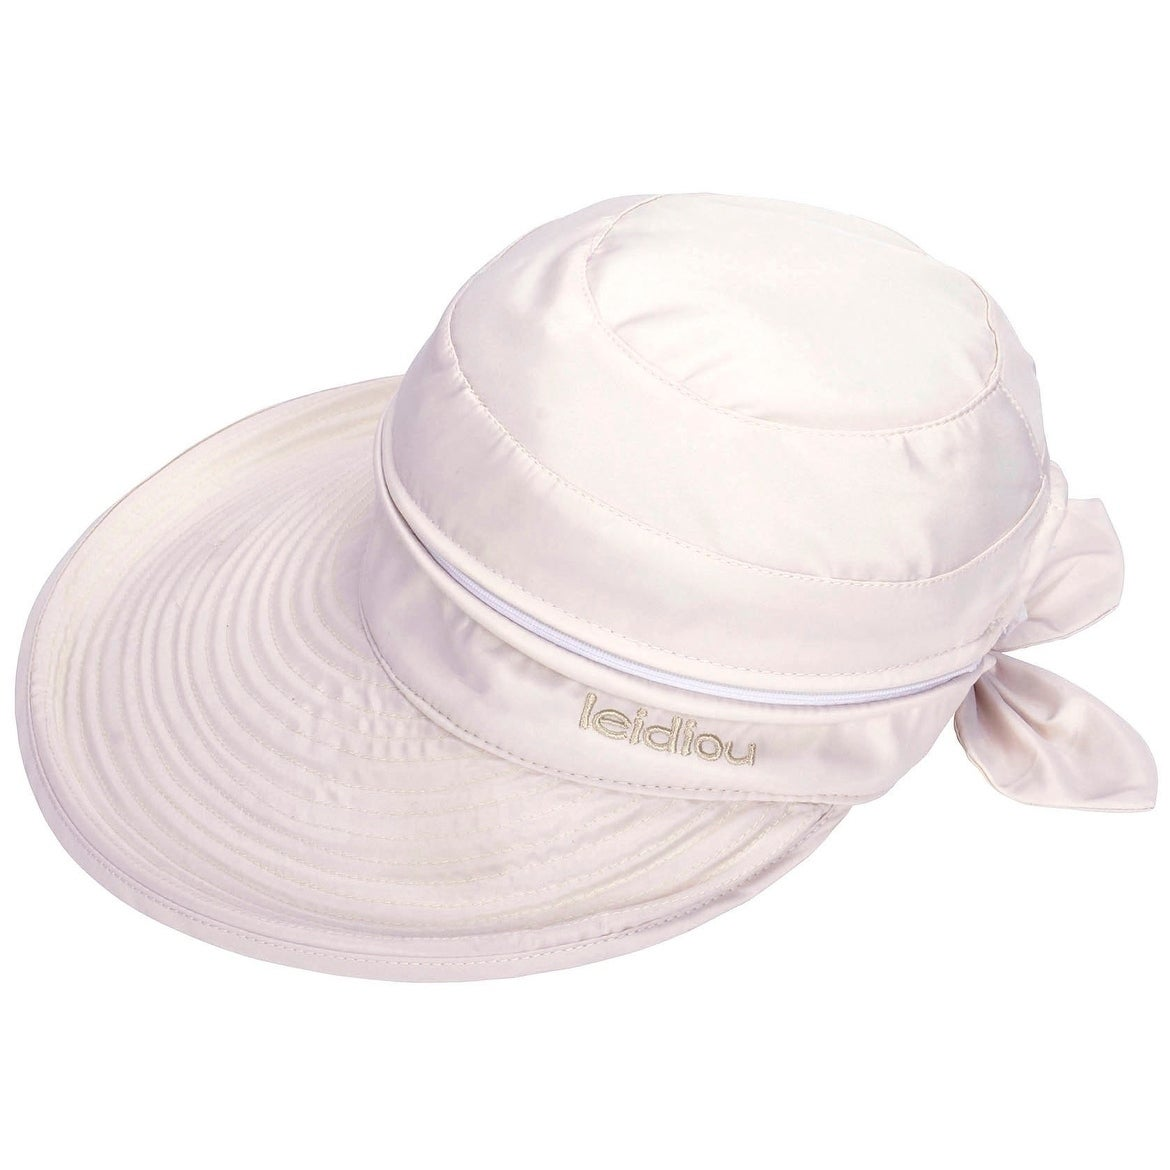 be1913196f8 Shop Women s UPF 50+ UV Sun Protective Convertible Beach Hat Visor - On  Sale - Free Shipping On Orders Over  45 - Overstock - 19996325